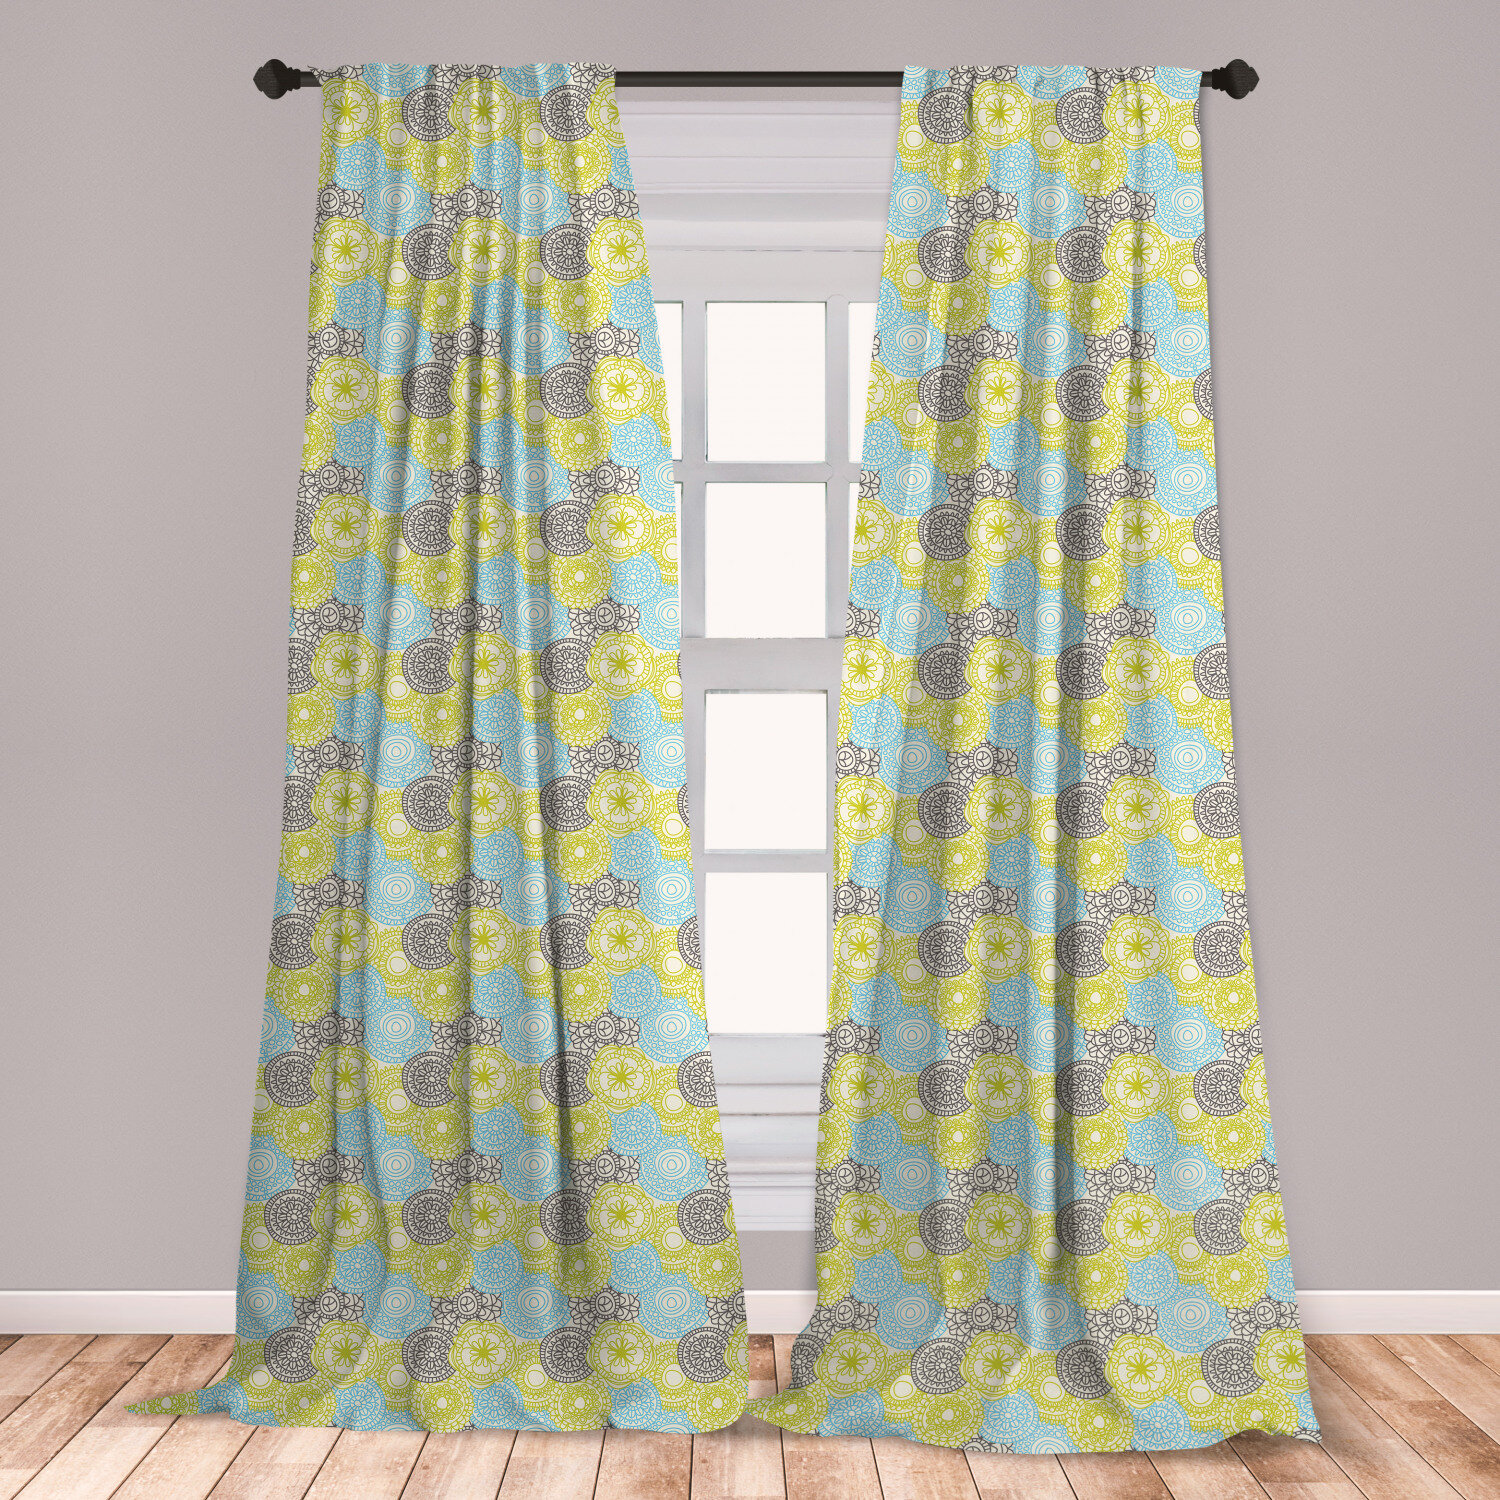 East Urban Home Floral Pastel Colored Flowers With Folk Style Effects Design Nature Print Room Darkening Rod Pocket Curtain Panels Set Of 2 Floral Room Darkening Rod Pocket Curtain Panels Wayfair